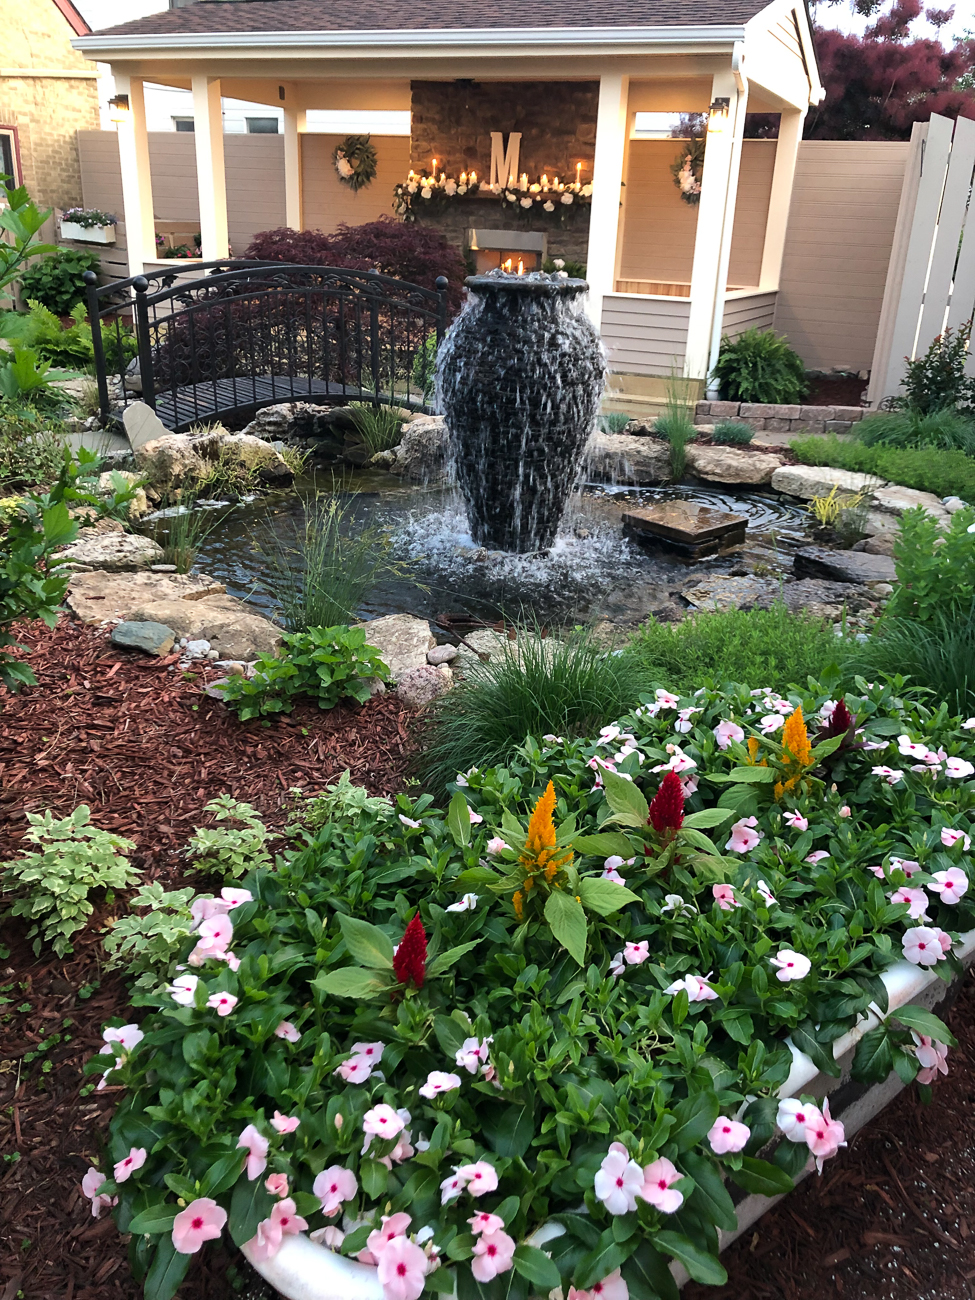 The courtyard grounds are beautiful during seasonal months. / Image courtesy of Weller Haus // Published: 1.8.21